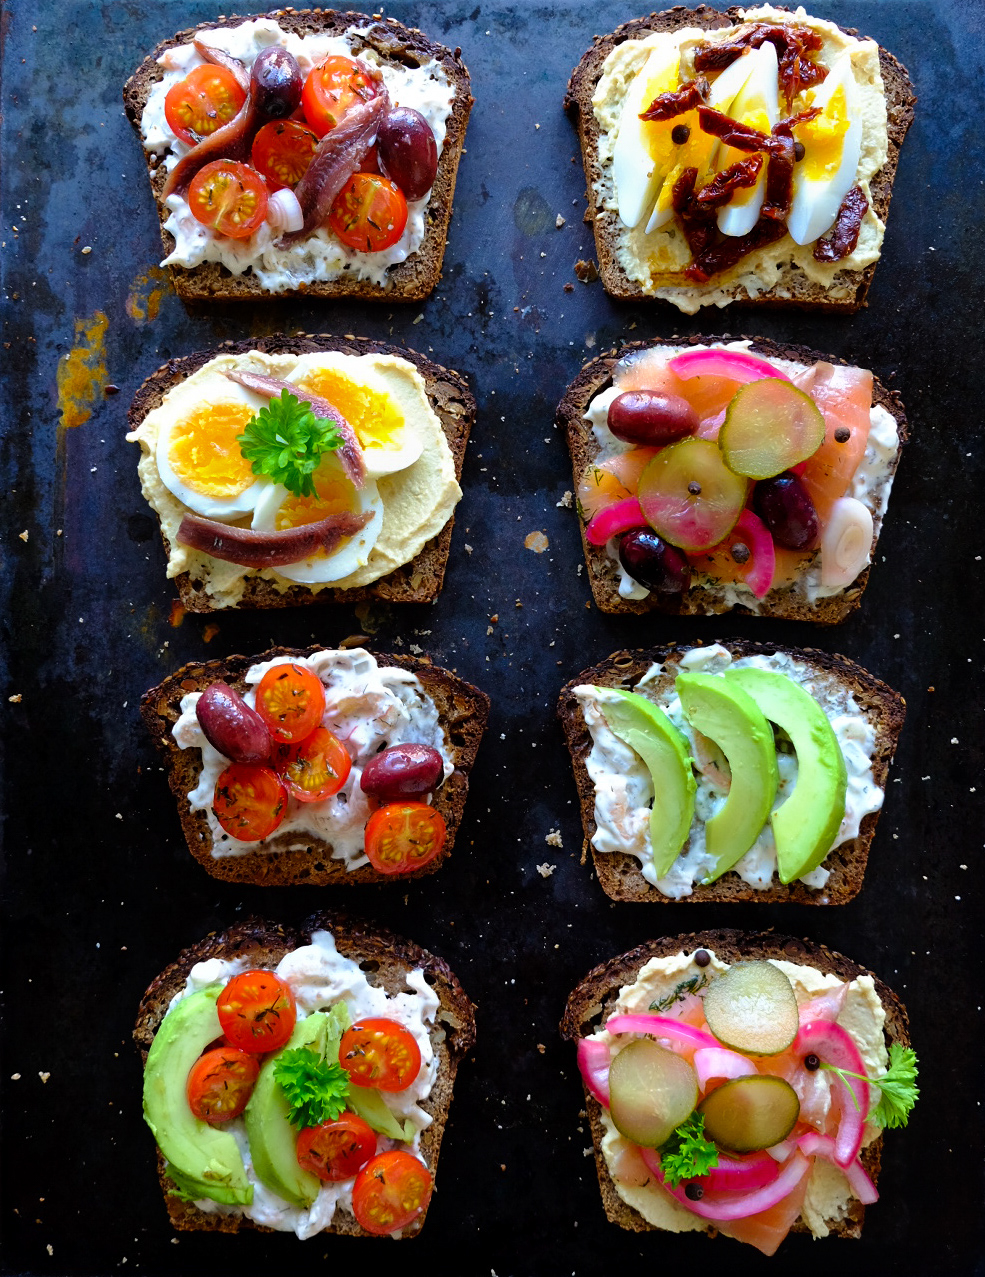 - Open rye bread sandwiches